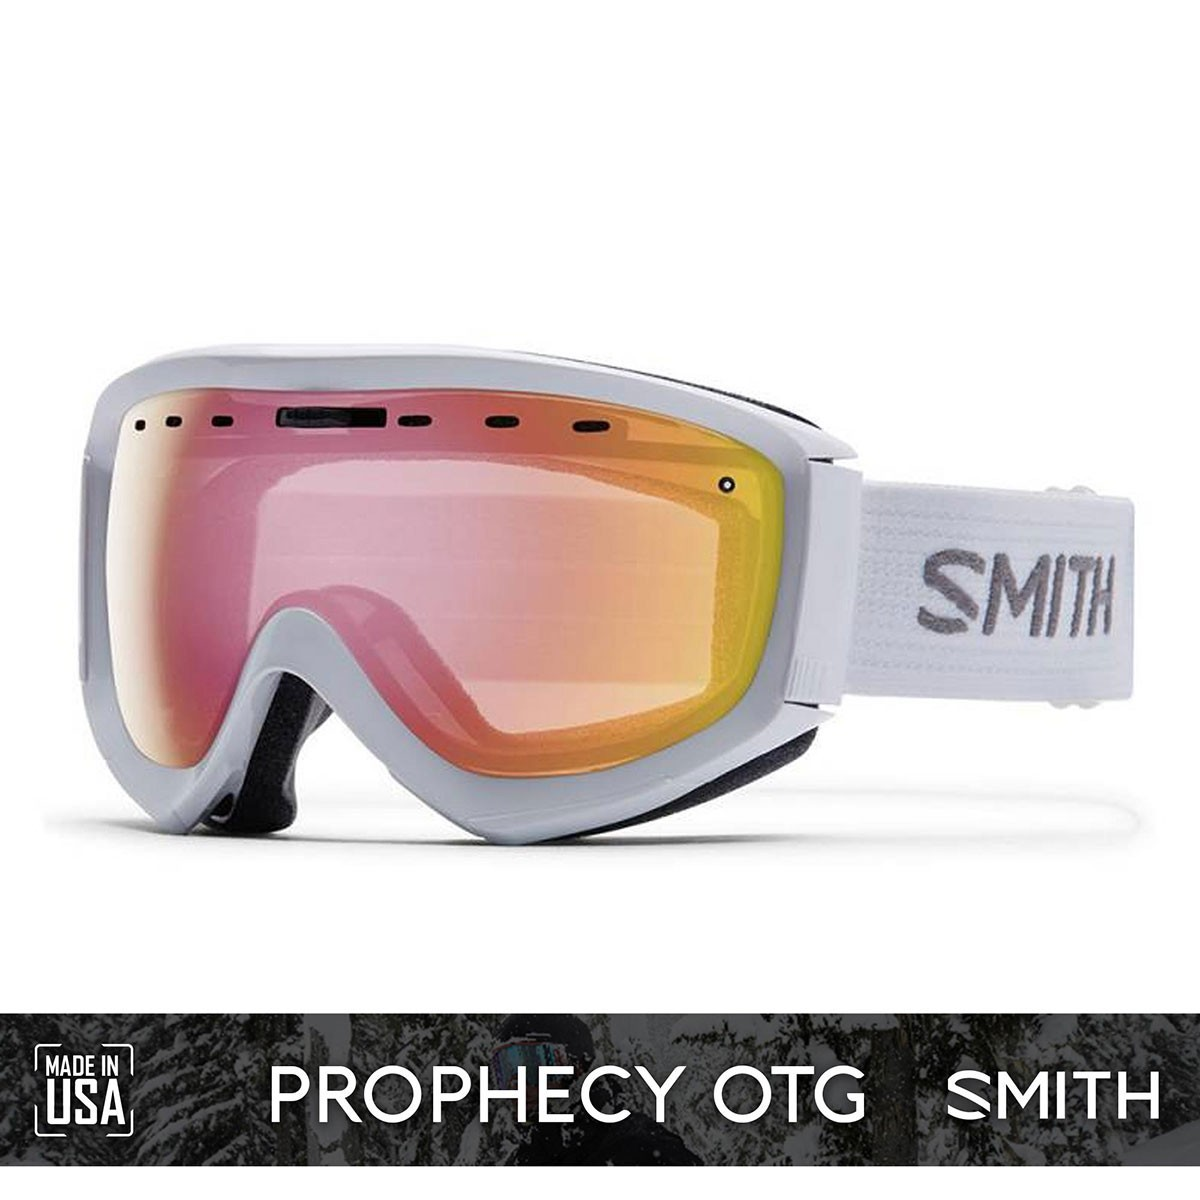 SMITH PROPHECY OTG White | S2 RED Sensor Mirror - Изображение - AQUAMATRIX